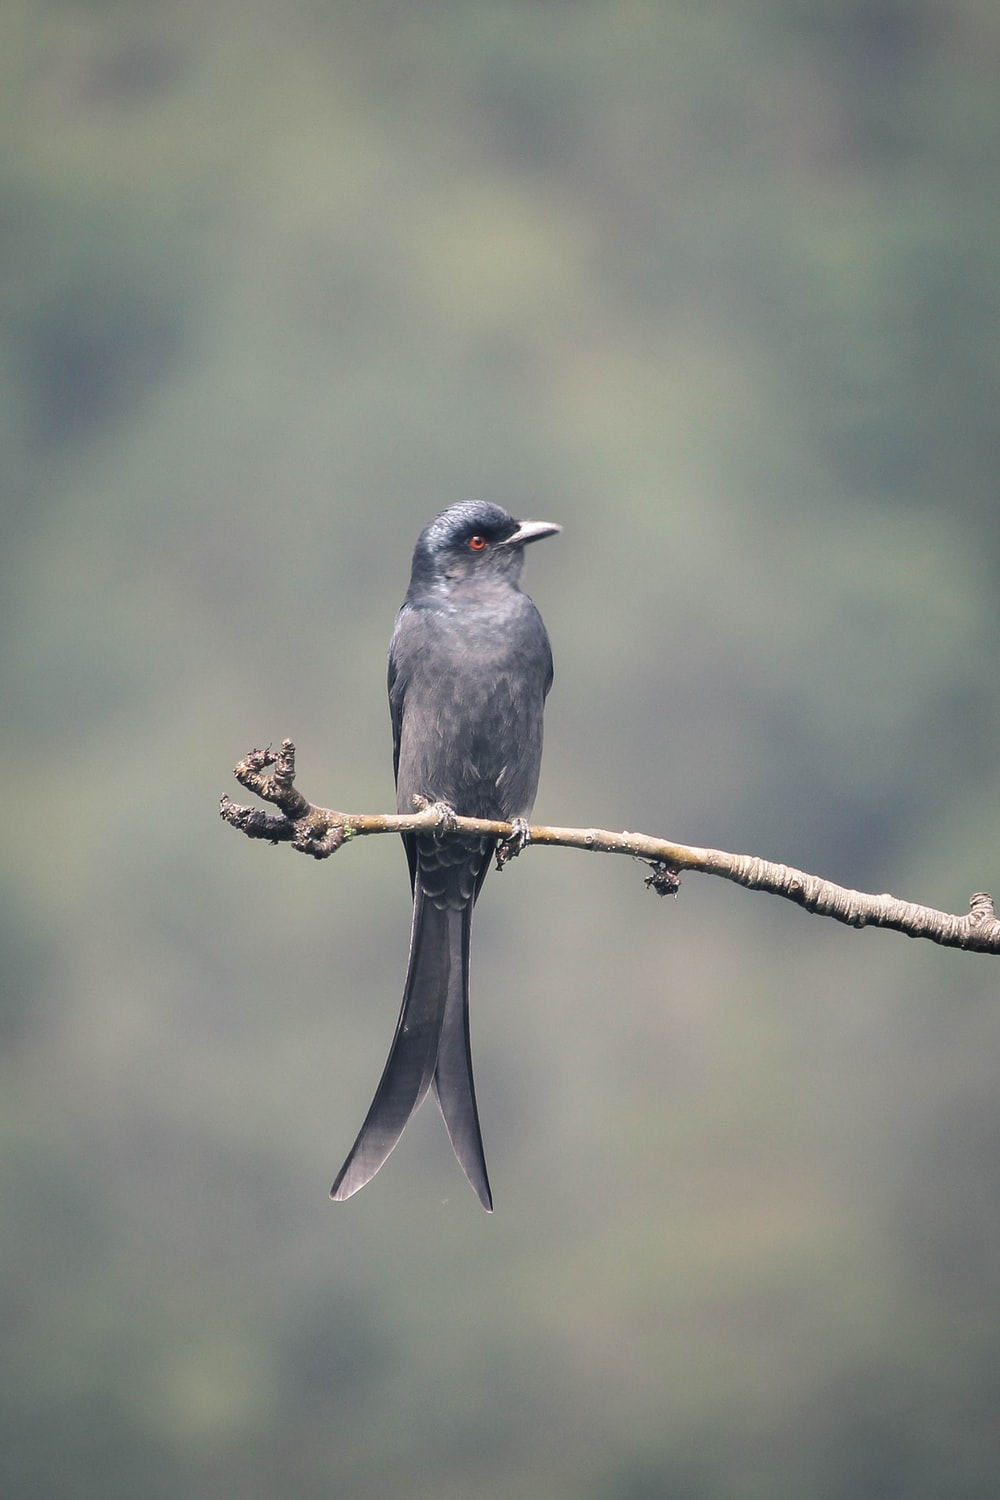 gray bird on top of tree branch during daytime